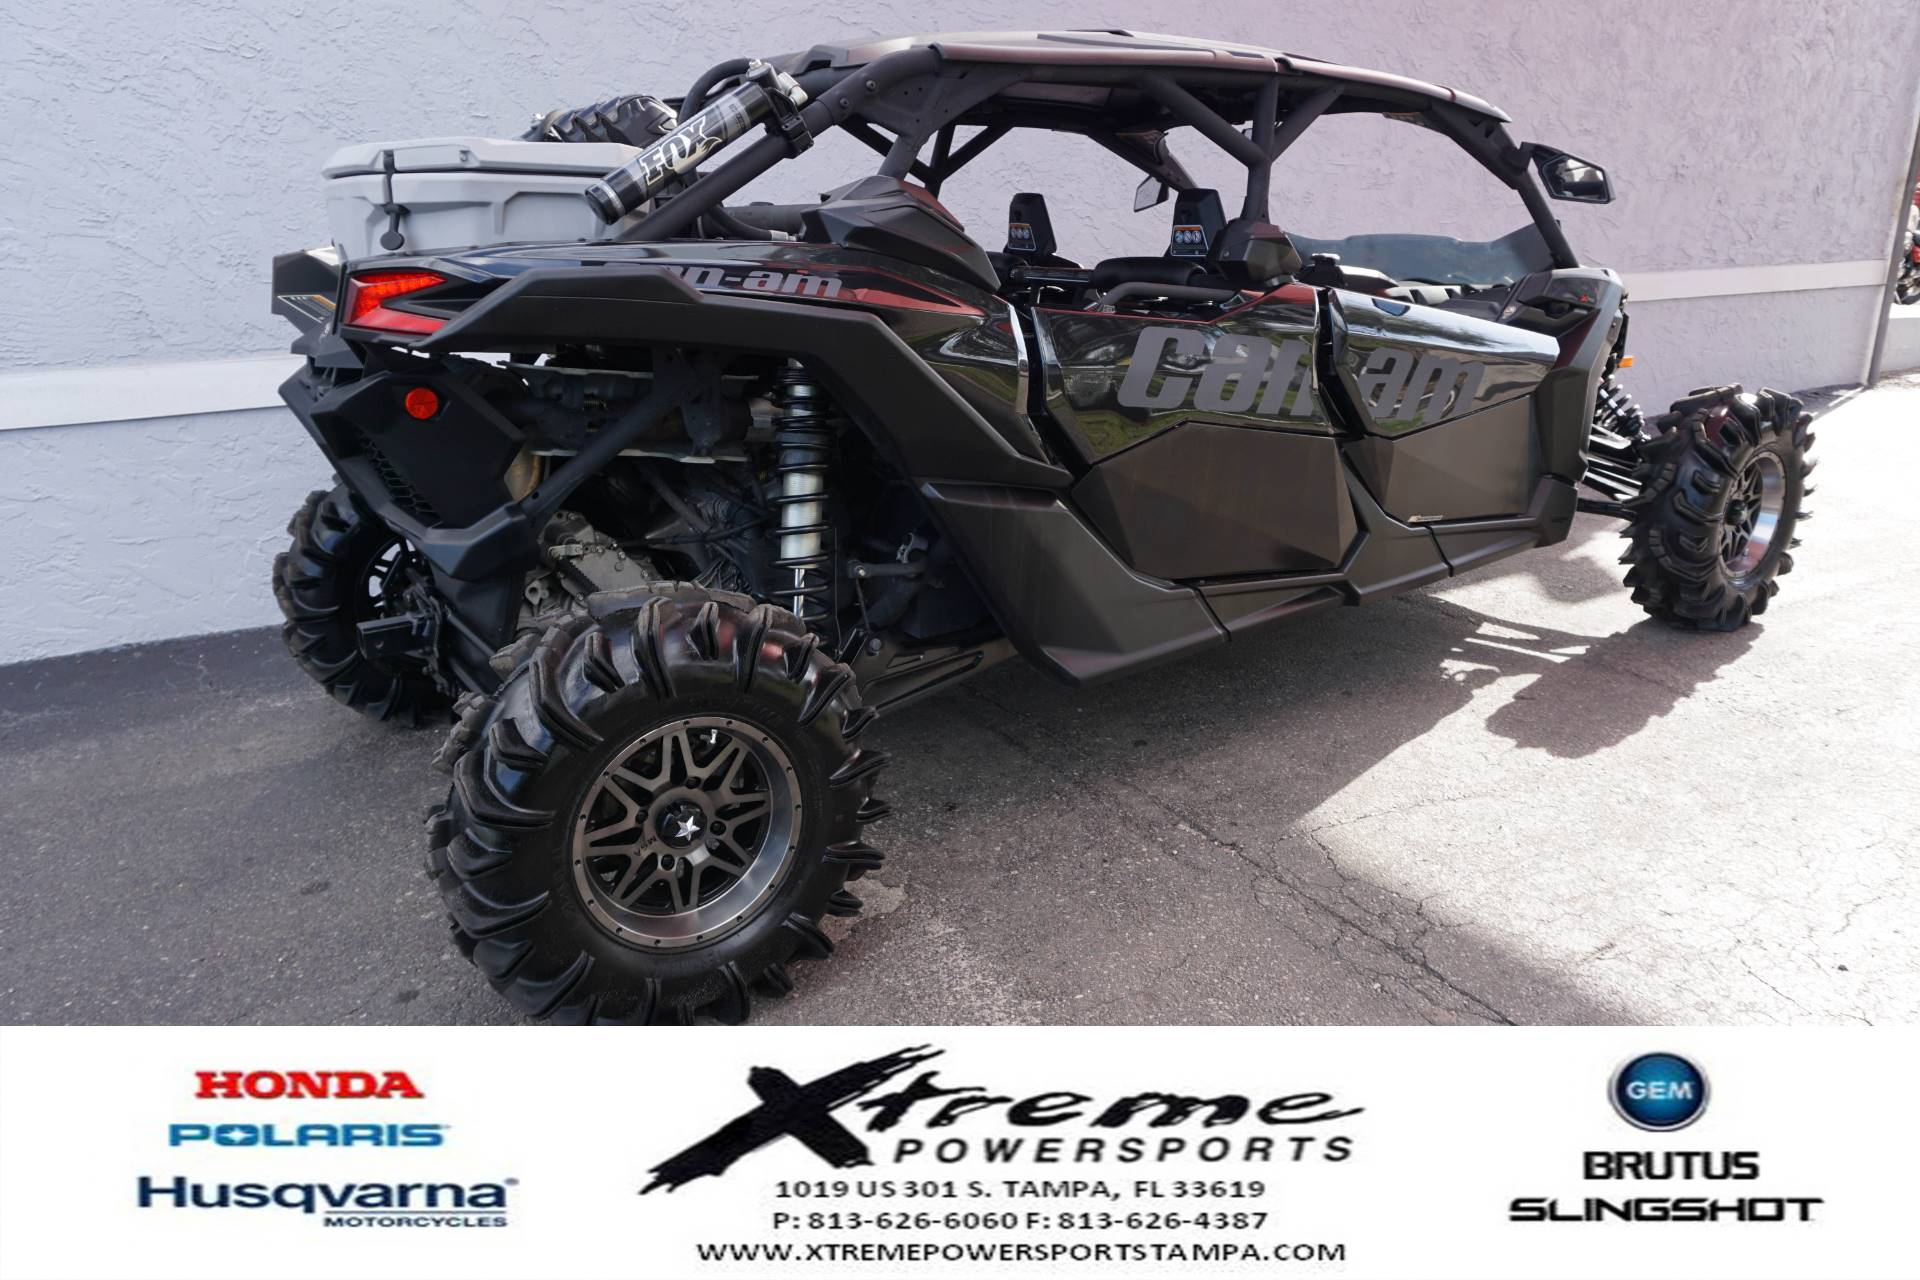 2017 Can-Am MAVERICK X3 TURBO MAX XRS in Tampa, Florida - Photo 7